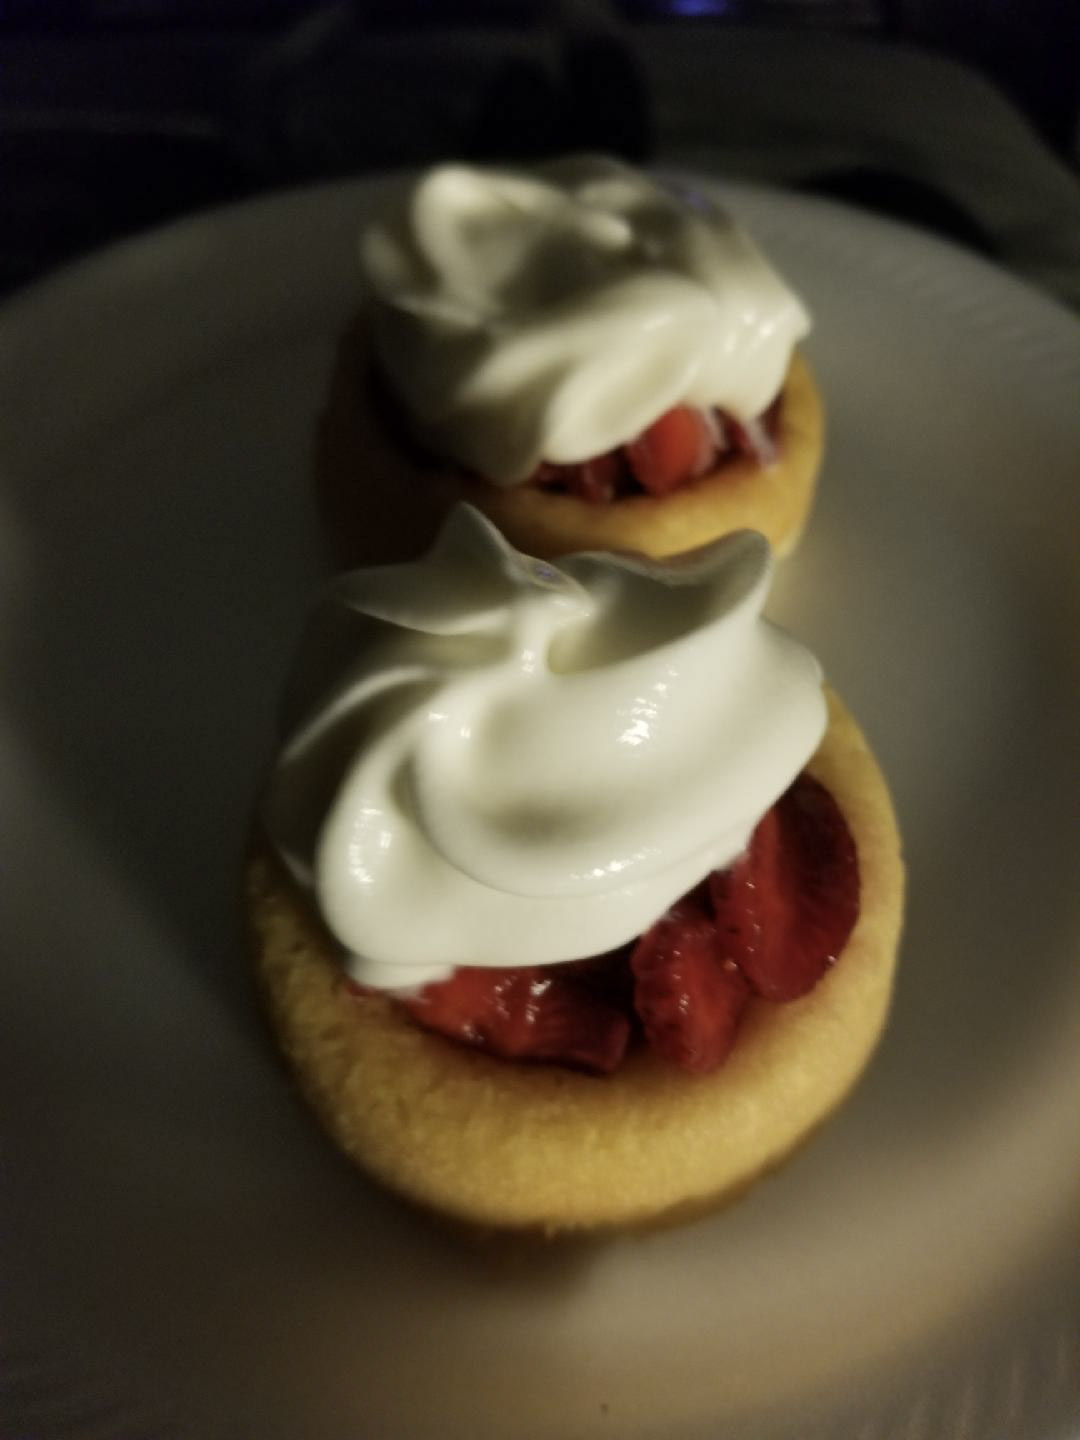 Our sweet treats - Strawberry Shortcake